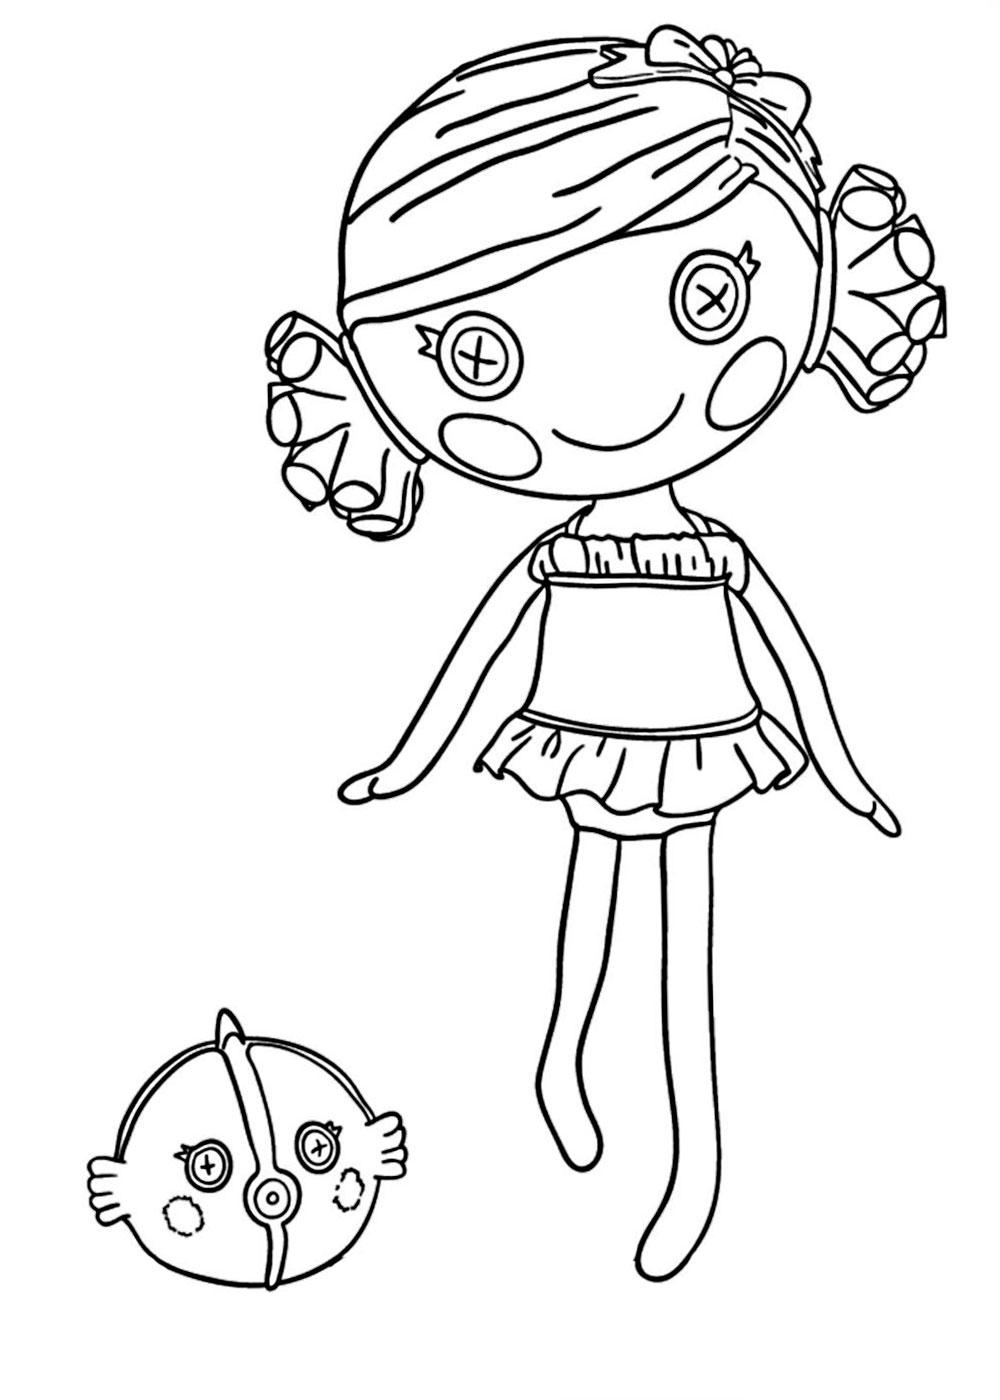 Adult Beauty Coloring Pages Lalaloopsy Gallery Images cute lalaloopsy coloring pages for girls to print free images